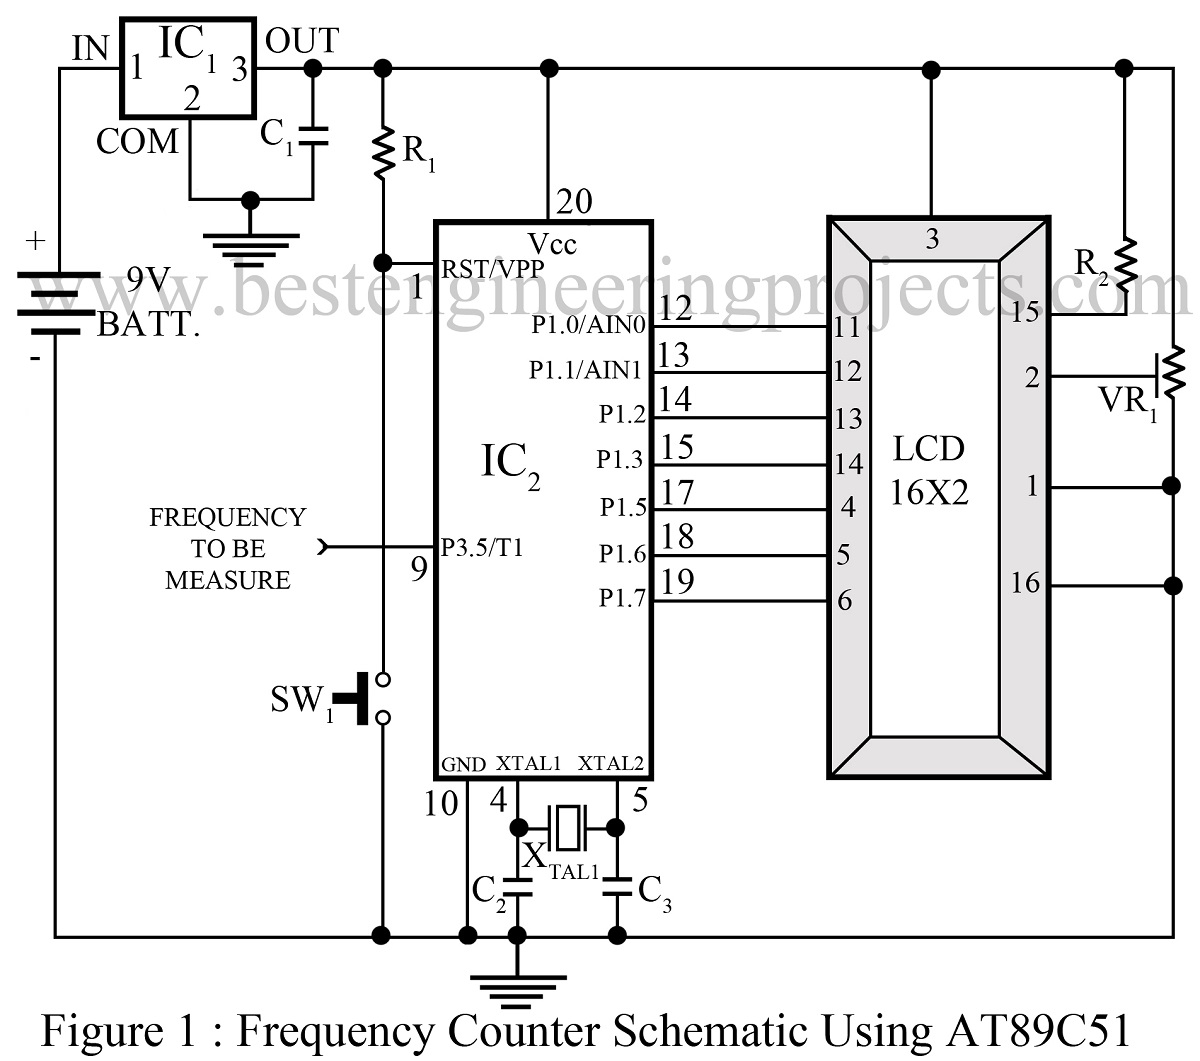 Frequency Counter Design : Frequency counter schematic using microcontroller at c